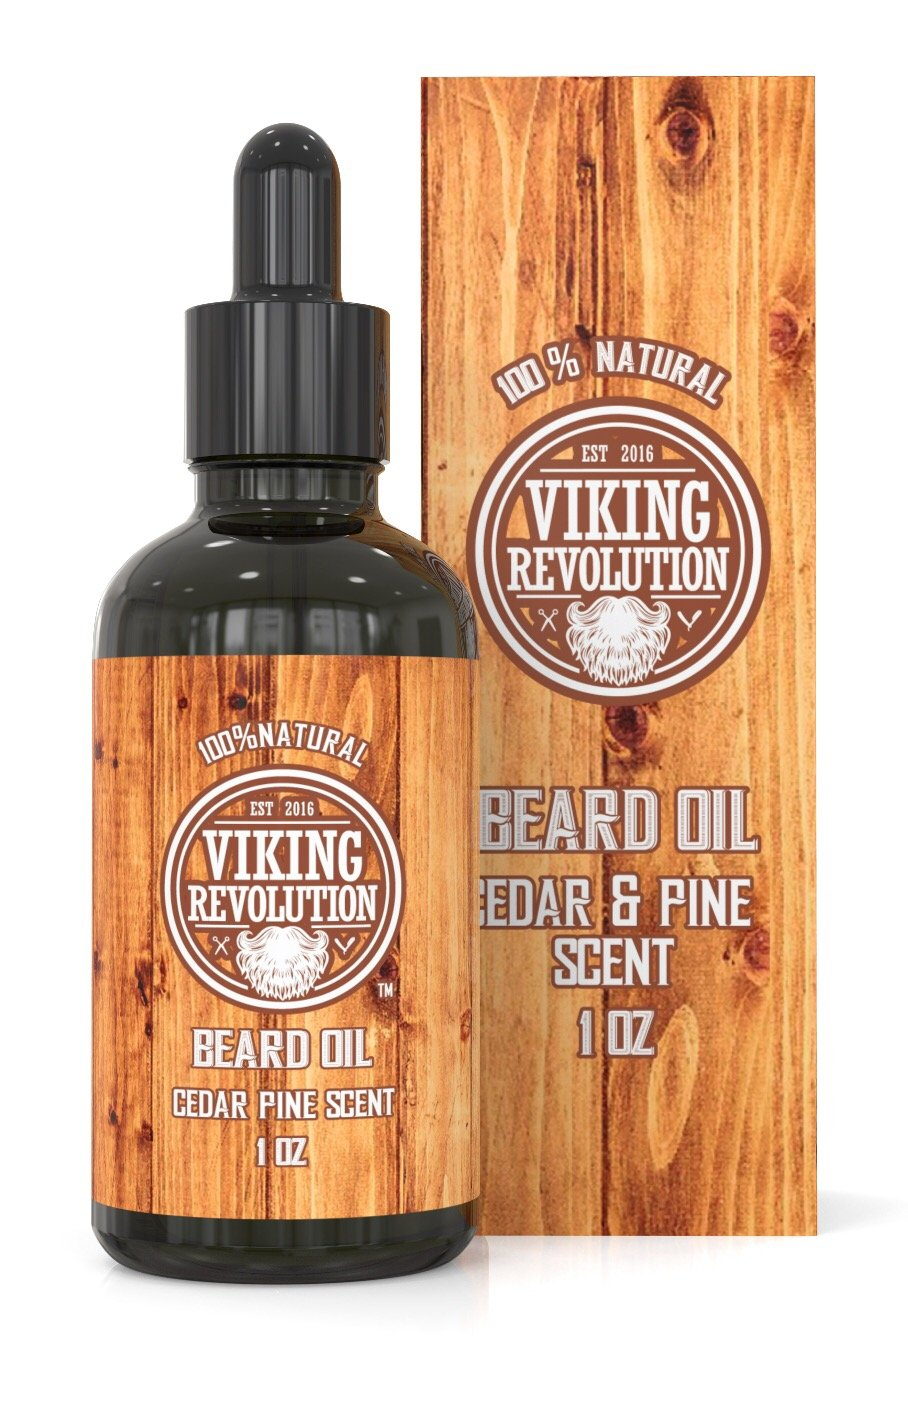 BEST DEAL Beard Oil Conditioner - All Natural Cedarwood & Pine Scent with Organic Argan & Jojoba Oils - Softens & Strengthens Beards and Mustaches for Men … Viking Revolution